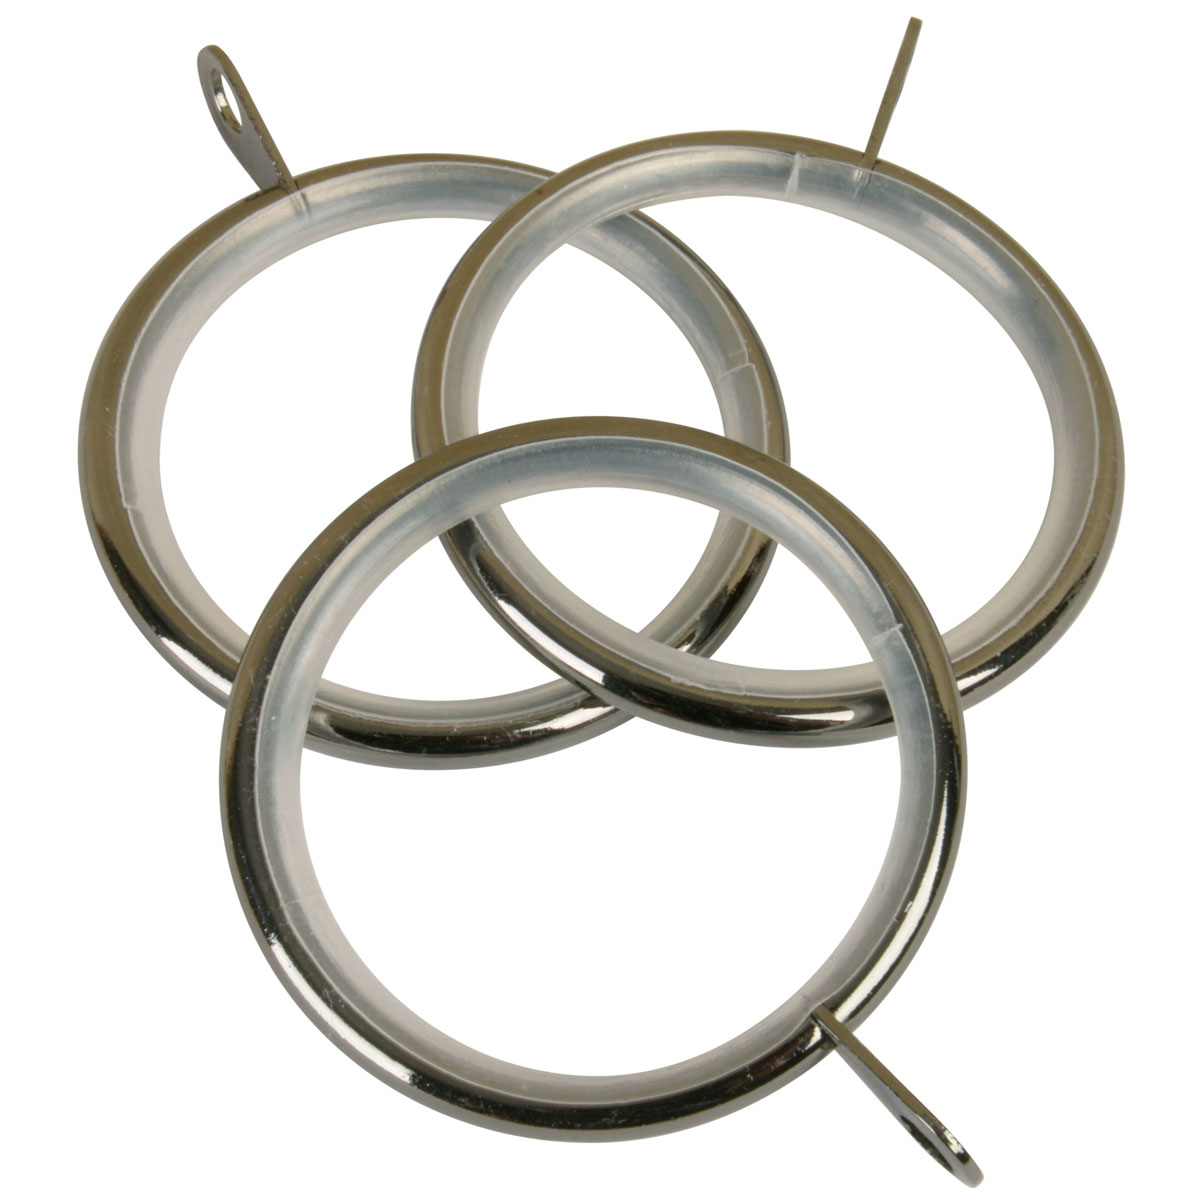 Buy Cheap Curtain Rings Compare Curtains Amp Blinds Prices